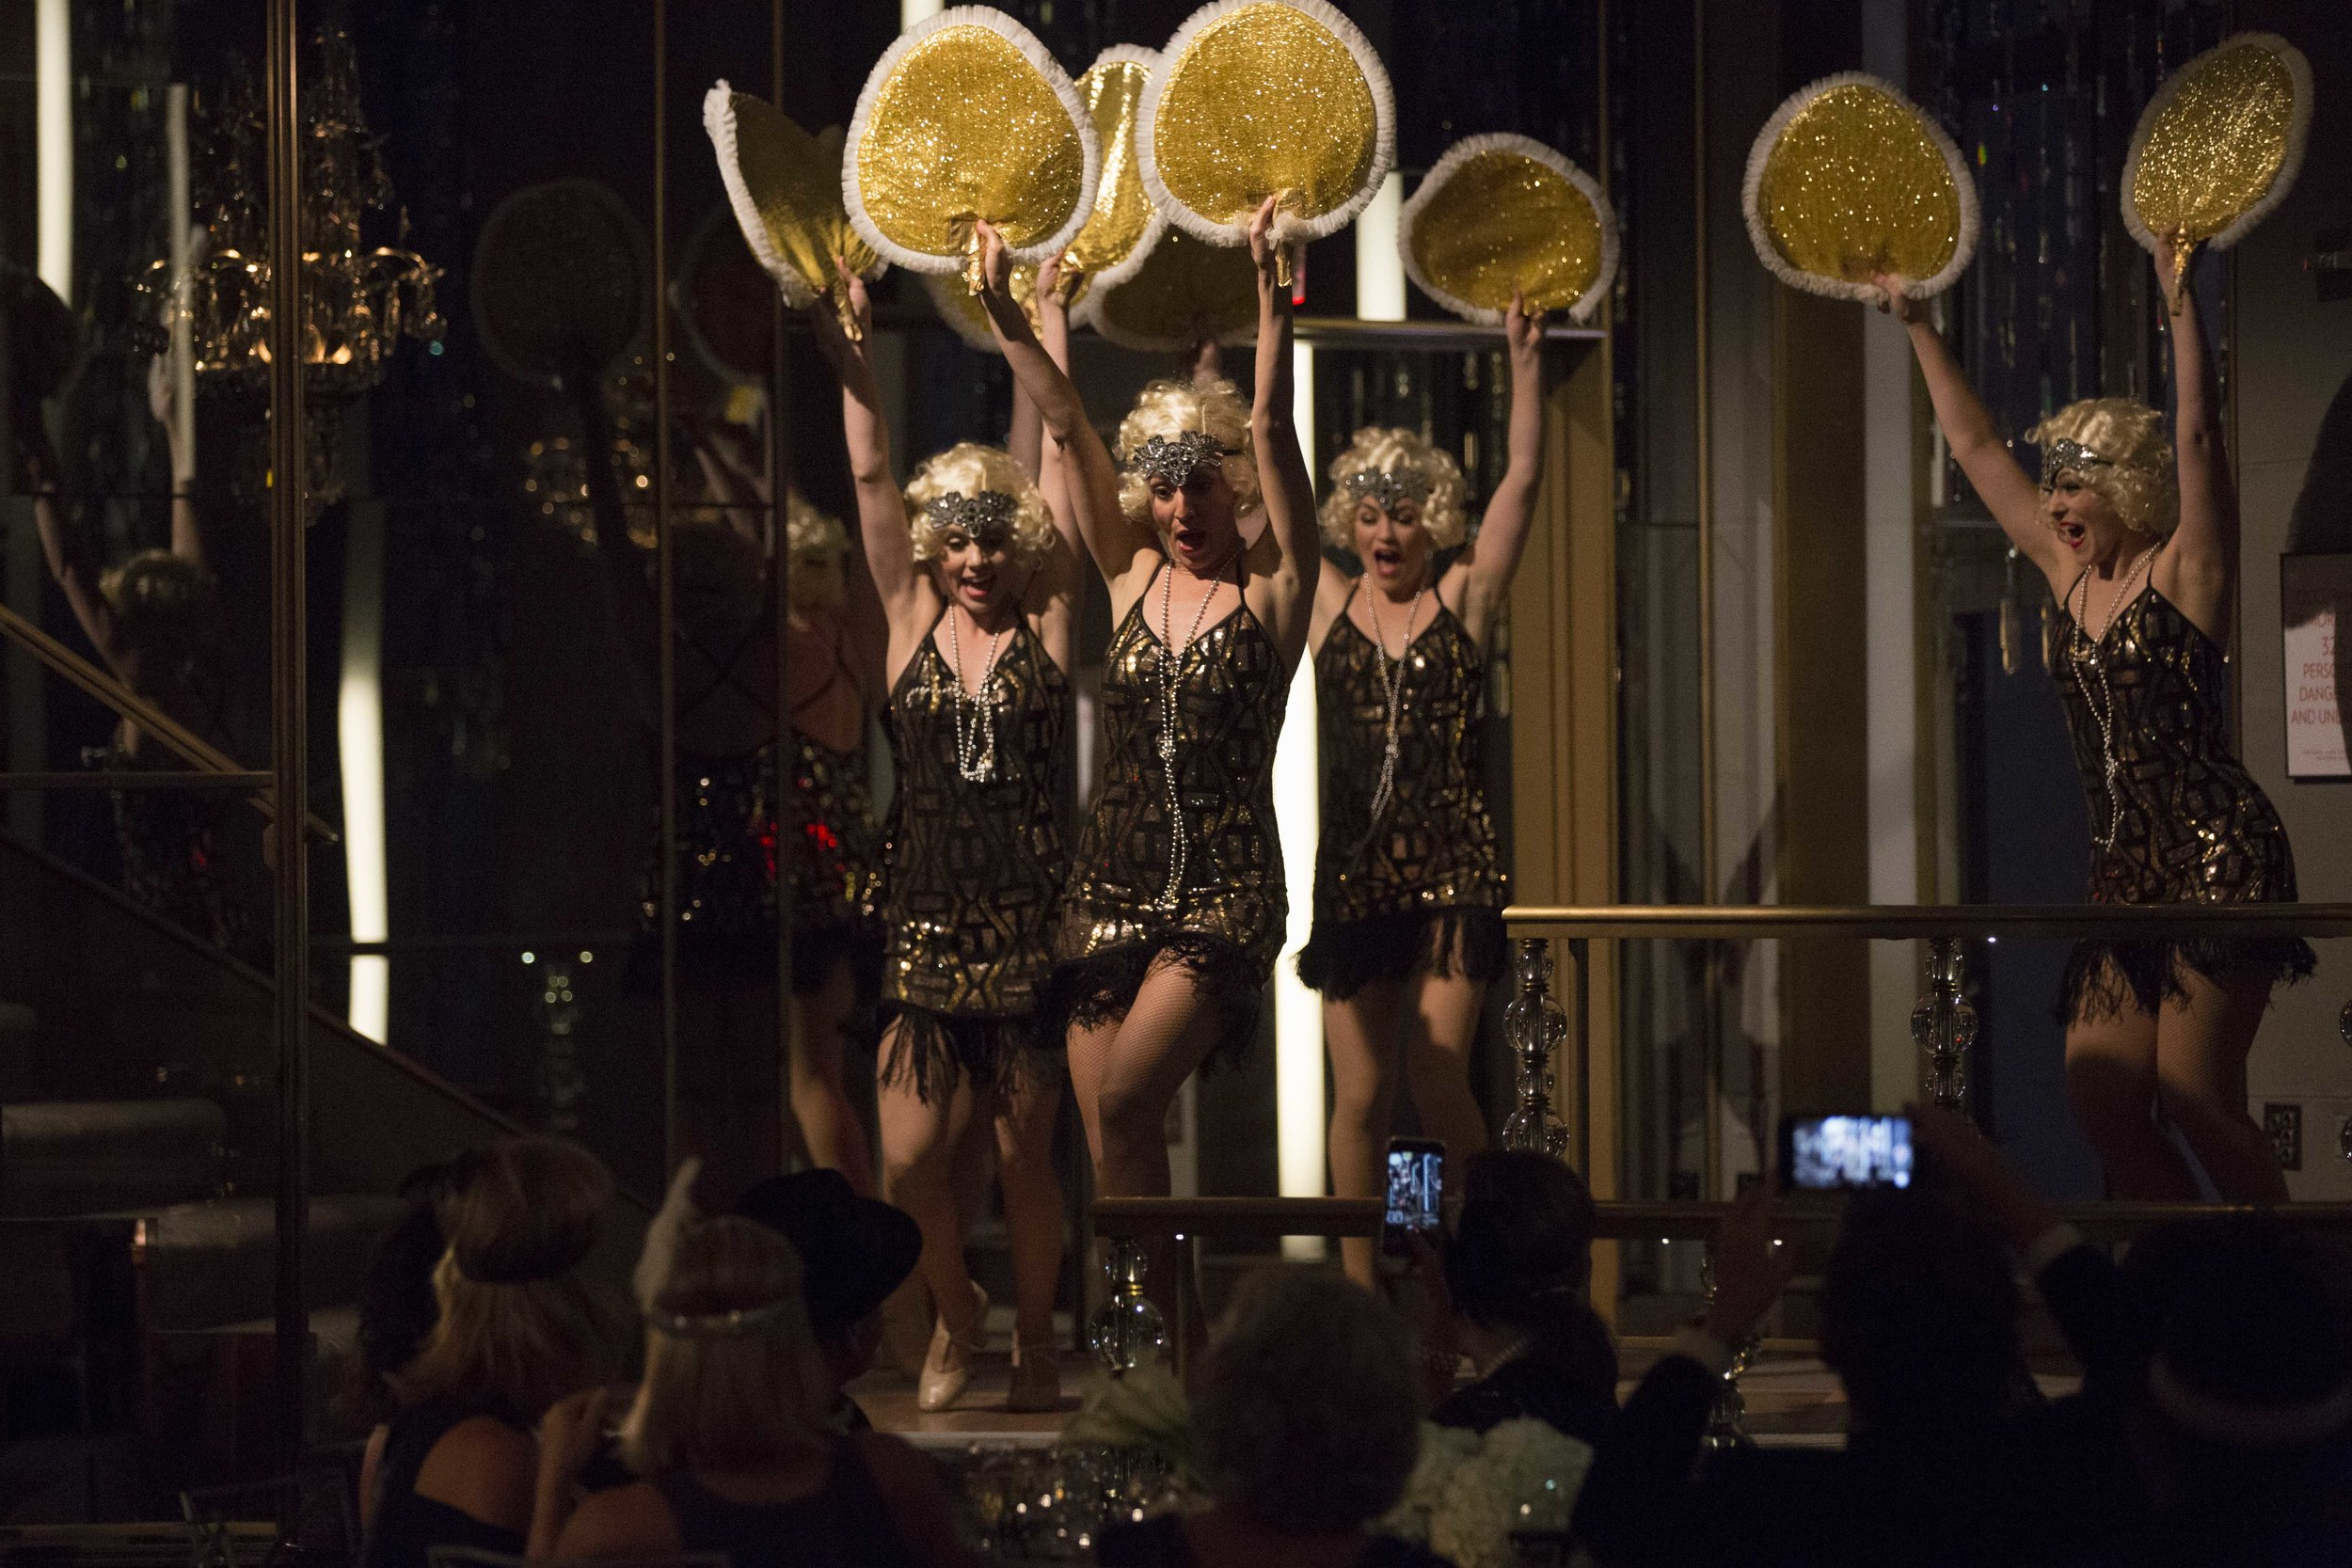 Roaring 20s night with Fleur Seule and dancers at The Rainbow Room!